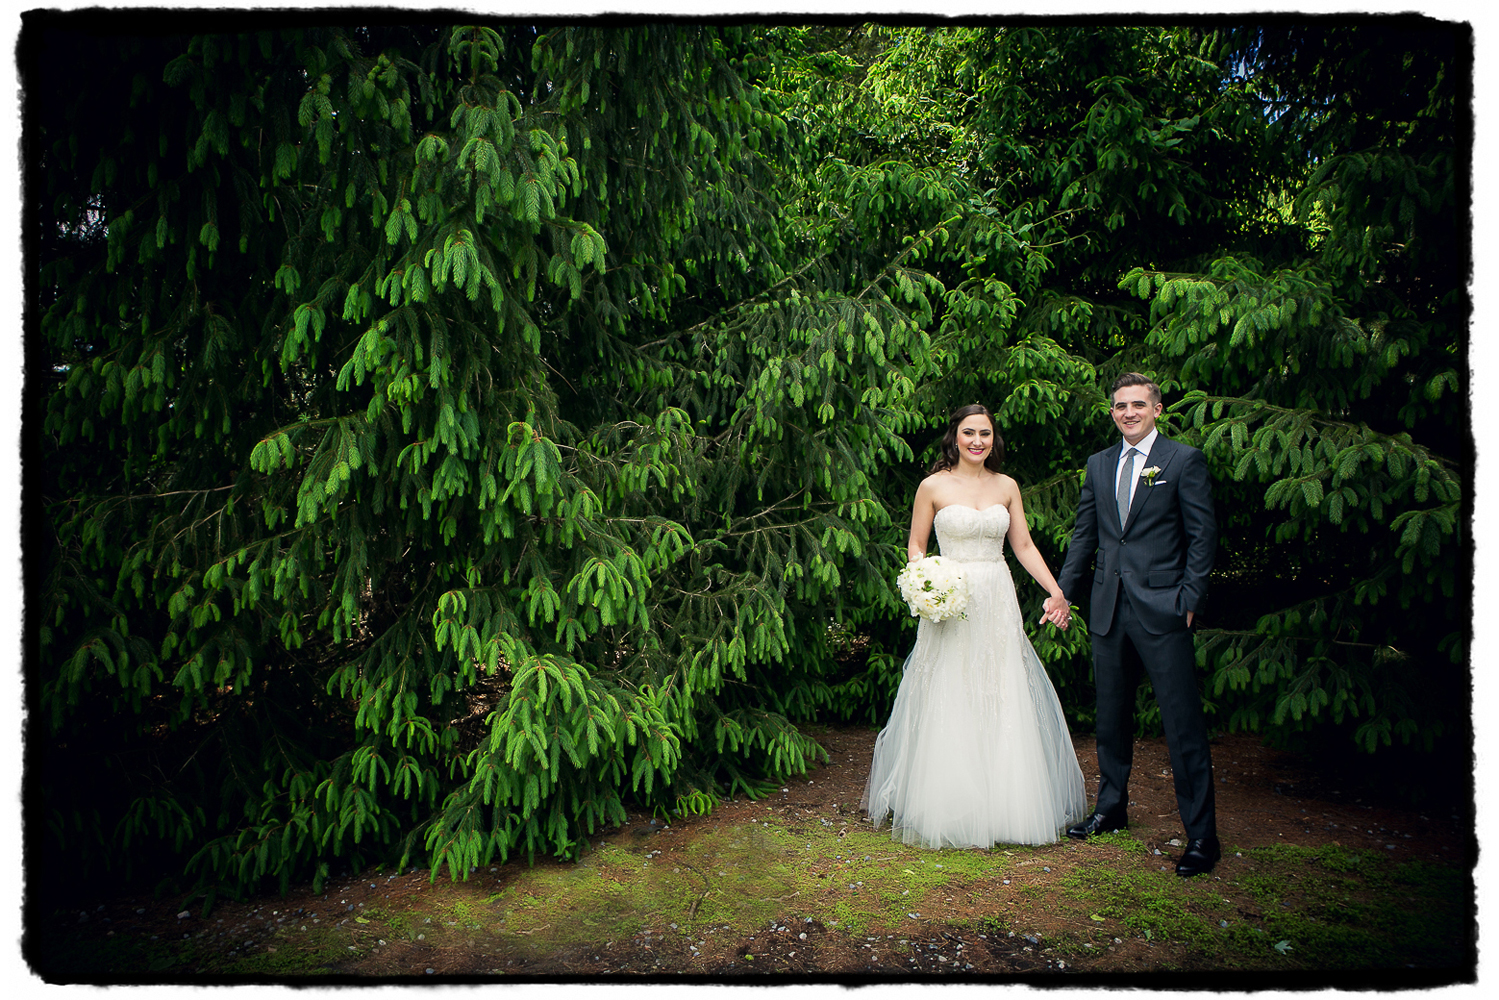 The incredible trees on the grounds at Lyndhurst Castle was the perfect rich background for this couple portrait.